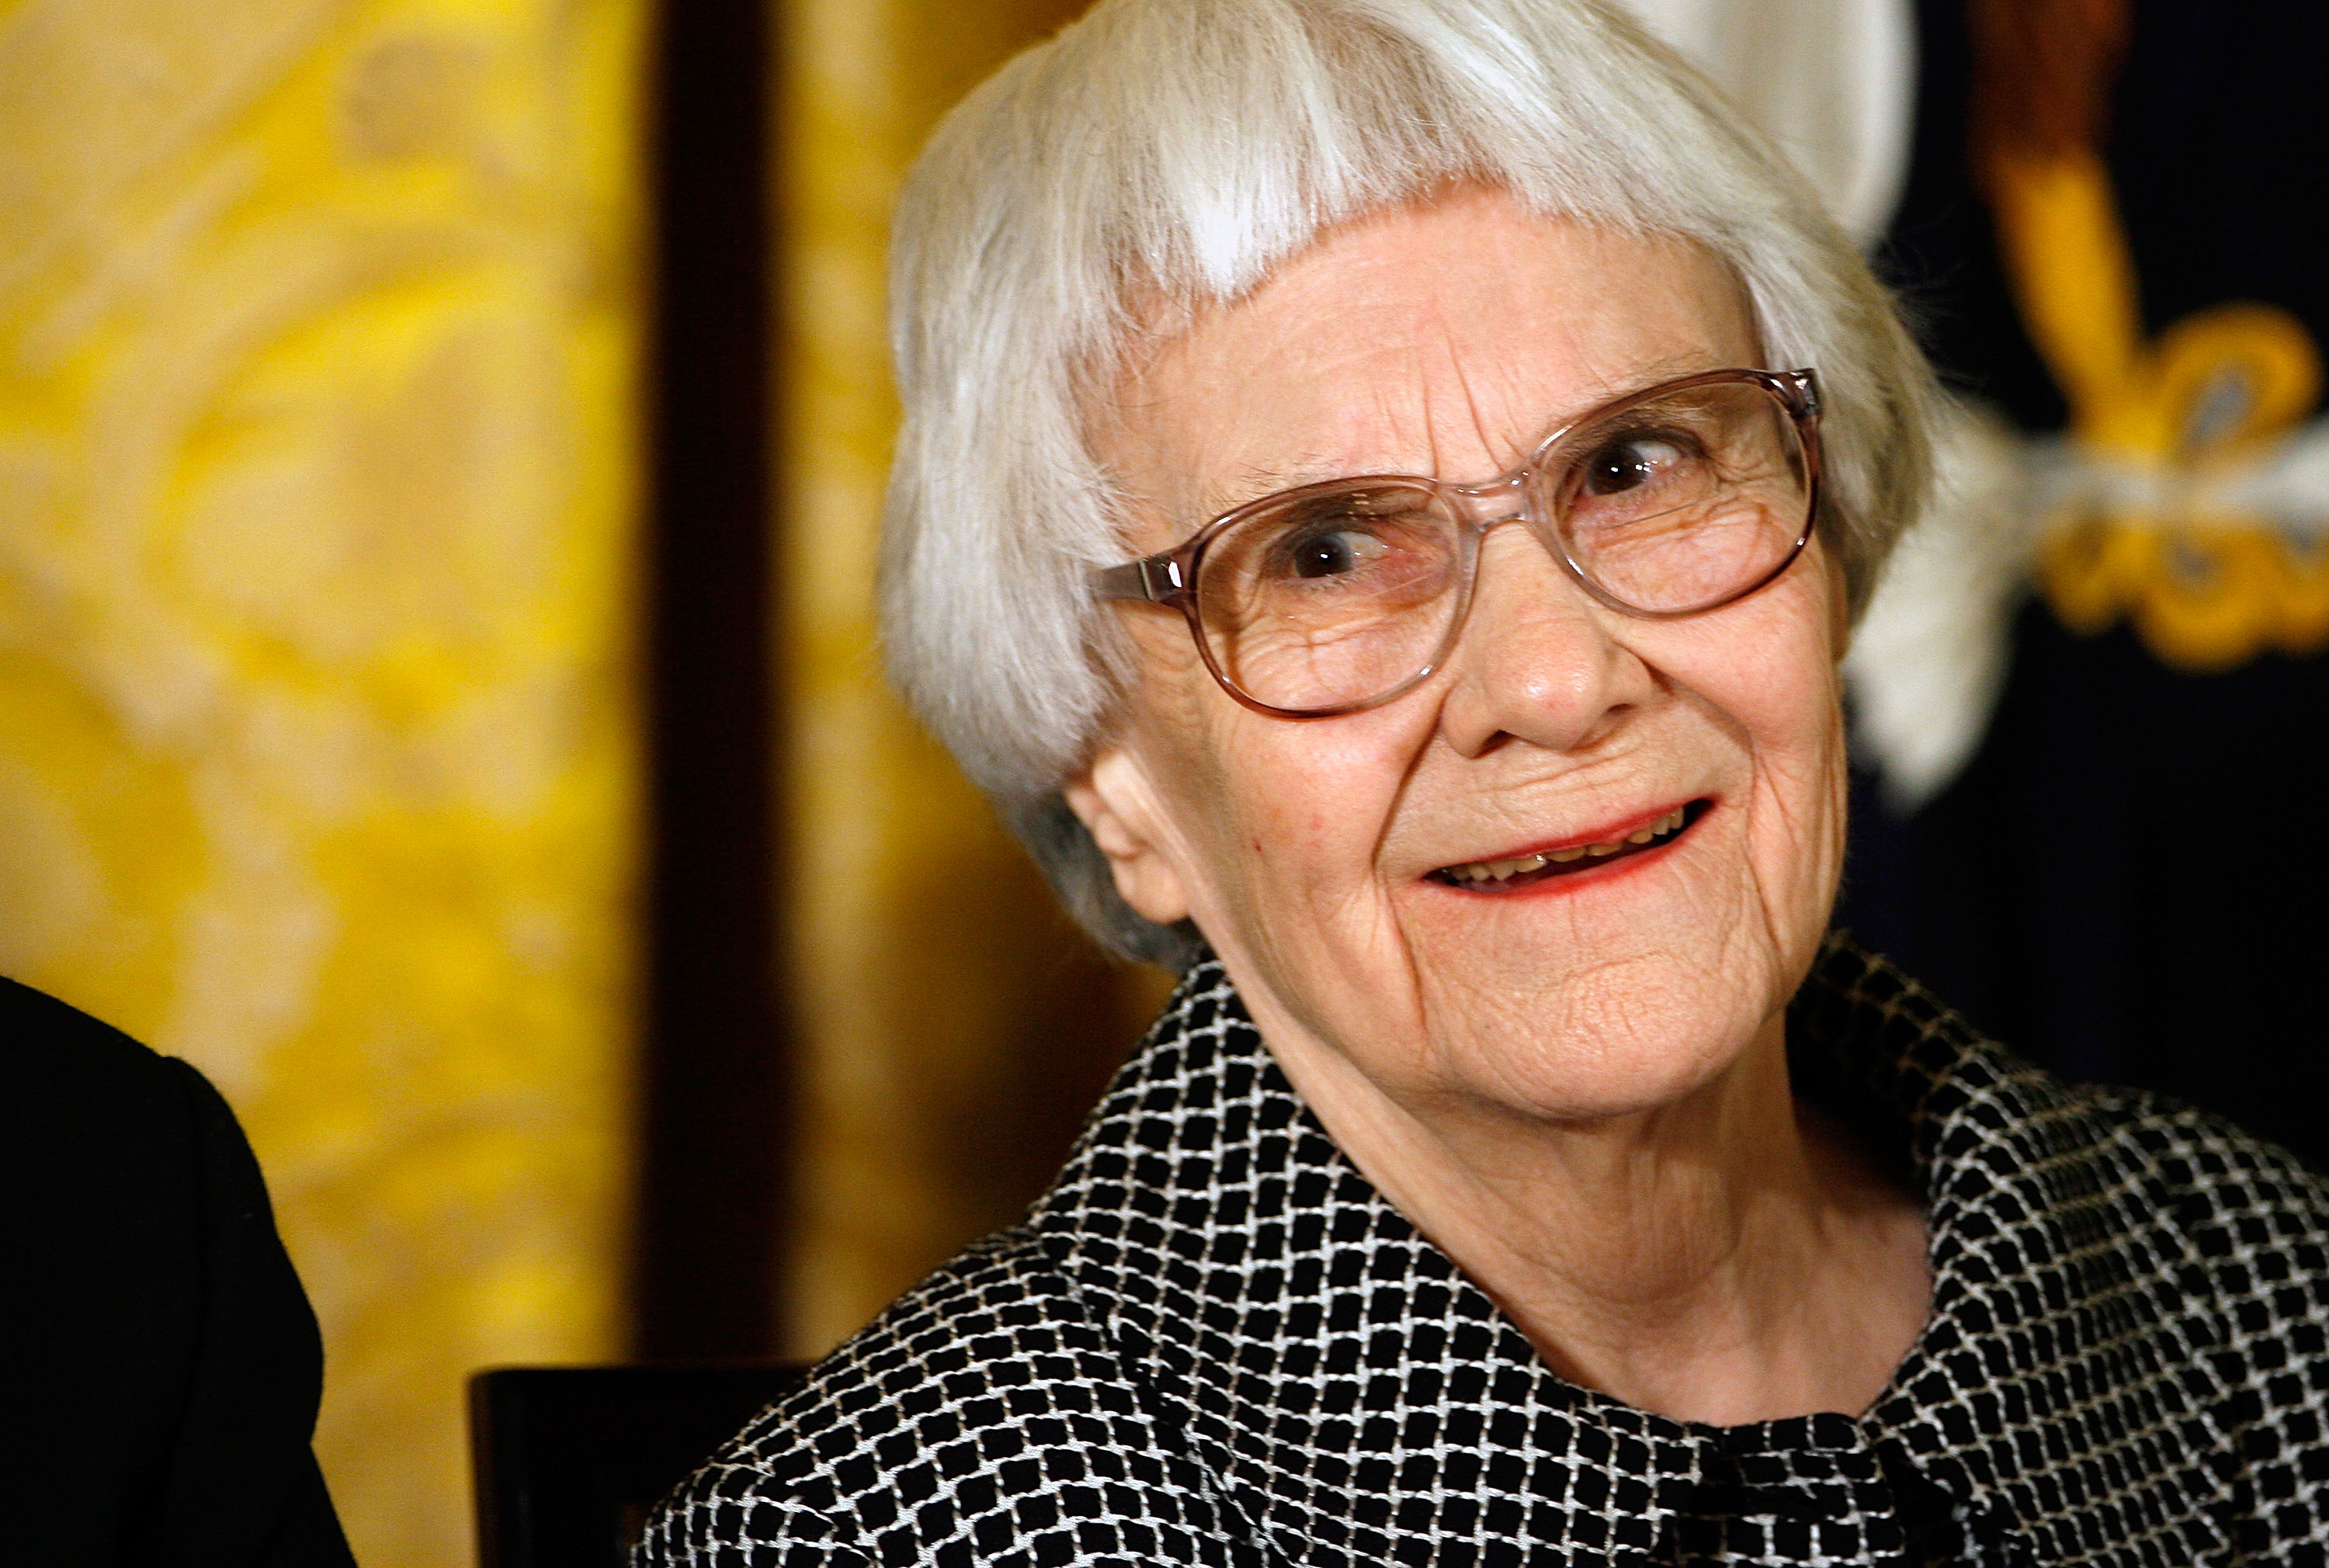 Harper Lee to Publish First Novel in Over 50 Years